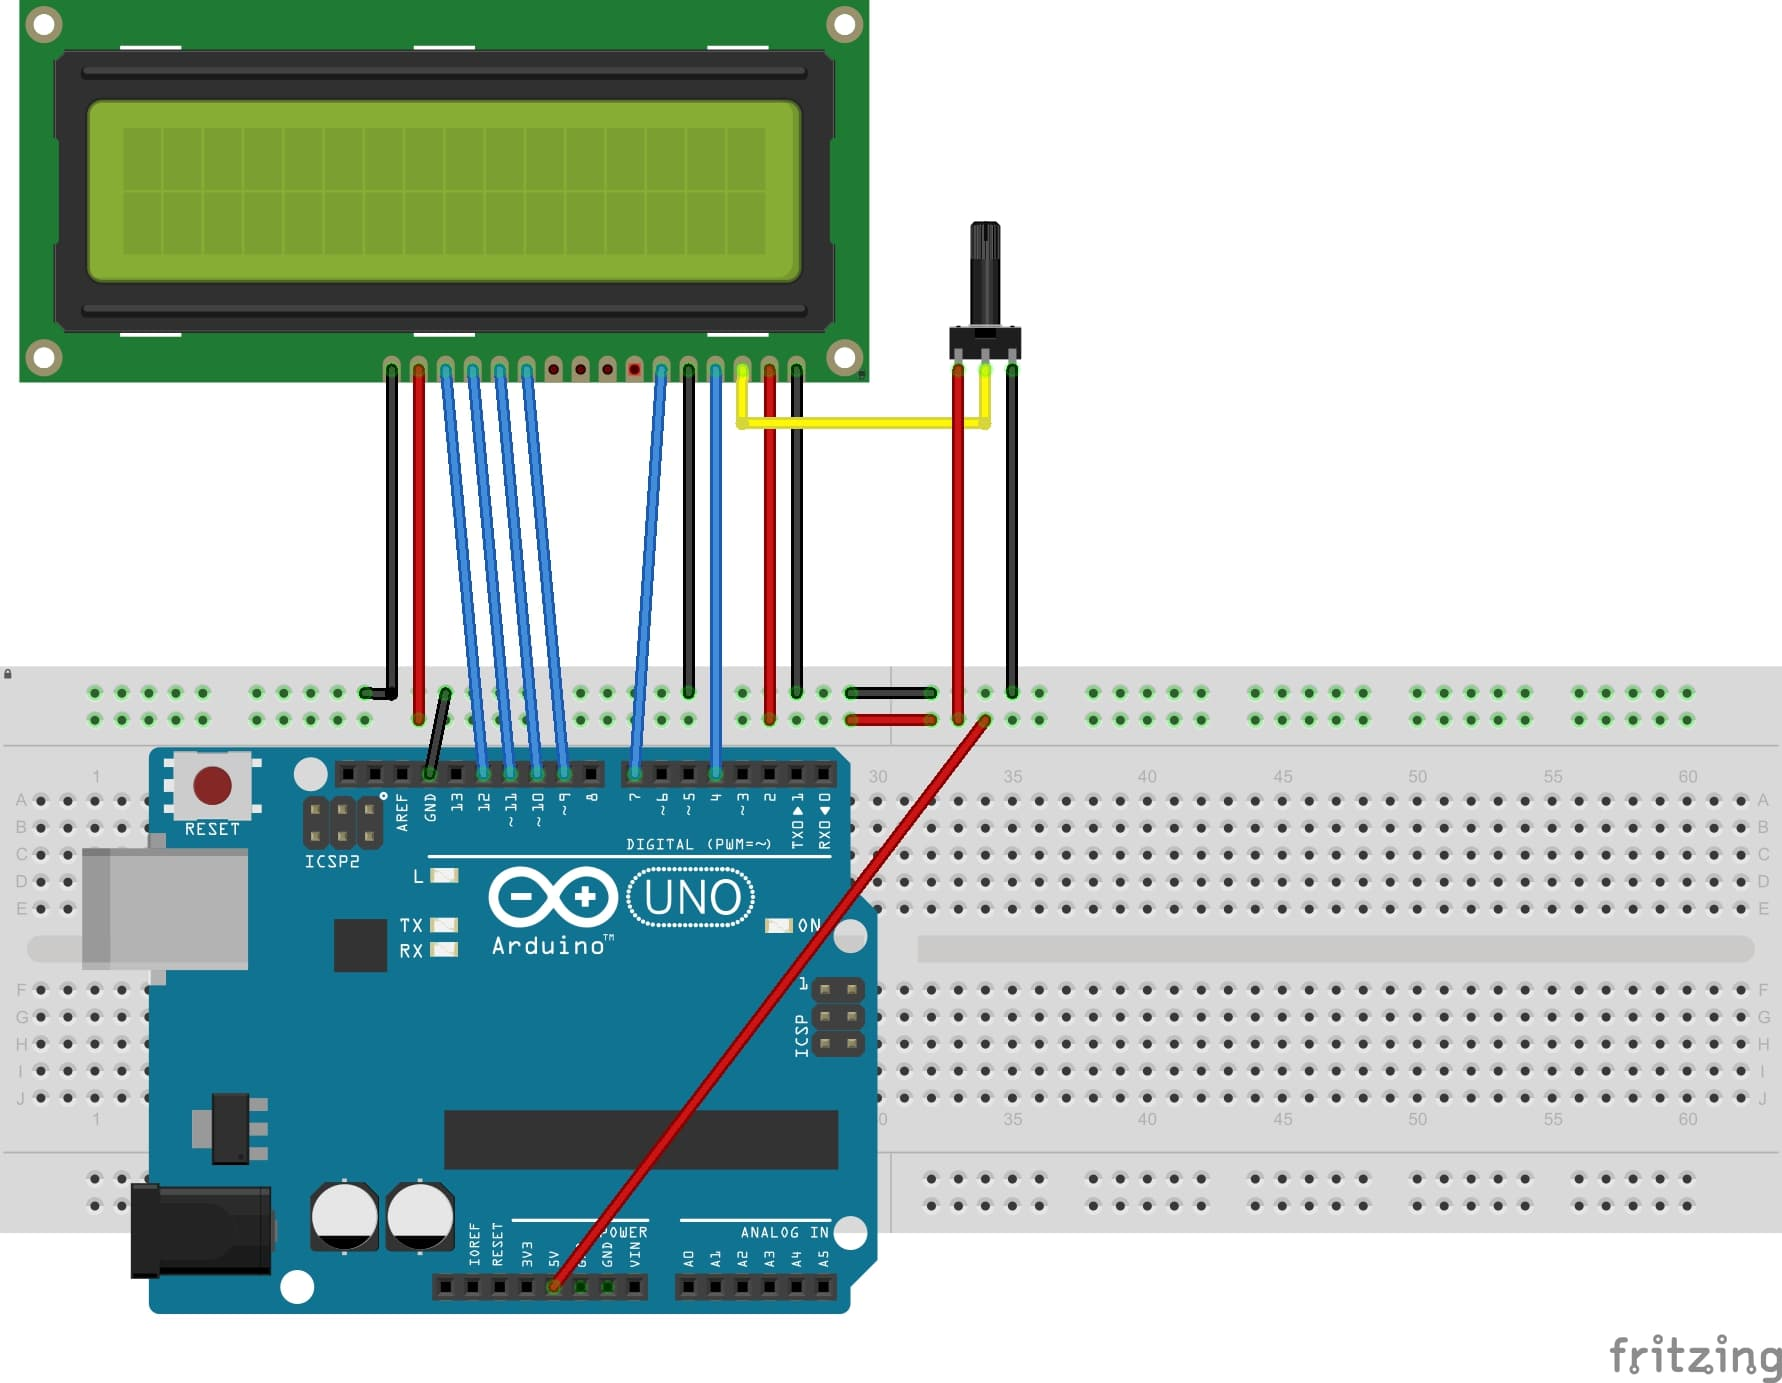 16x2 LCD Interfacing with Arduino connection diagram